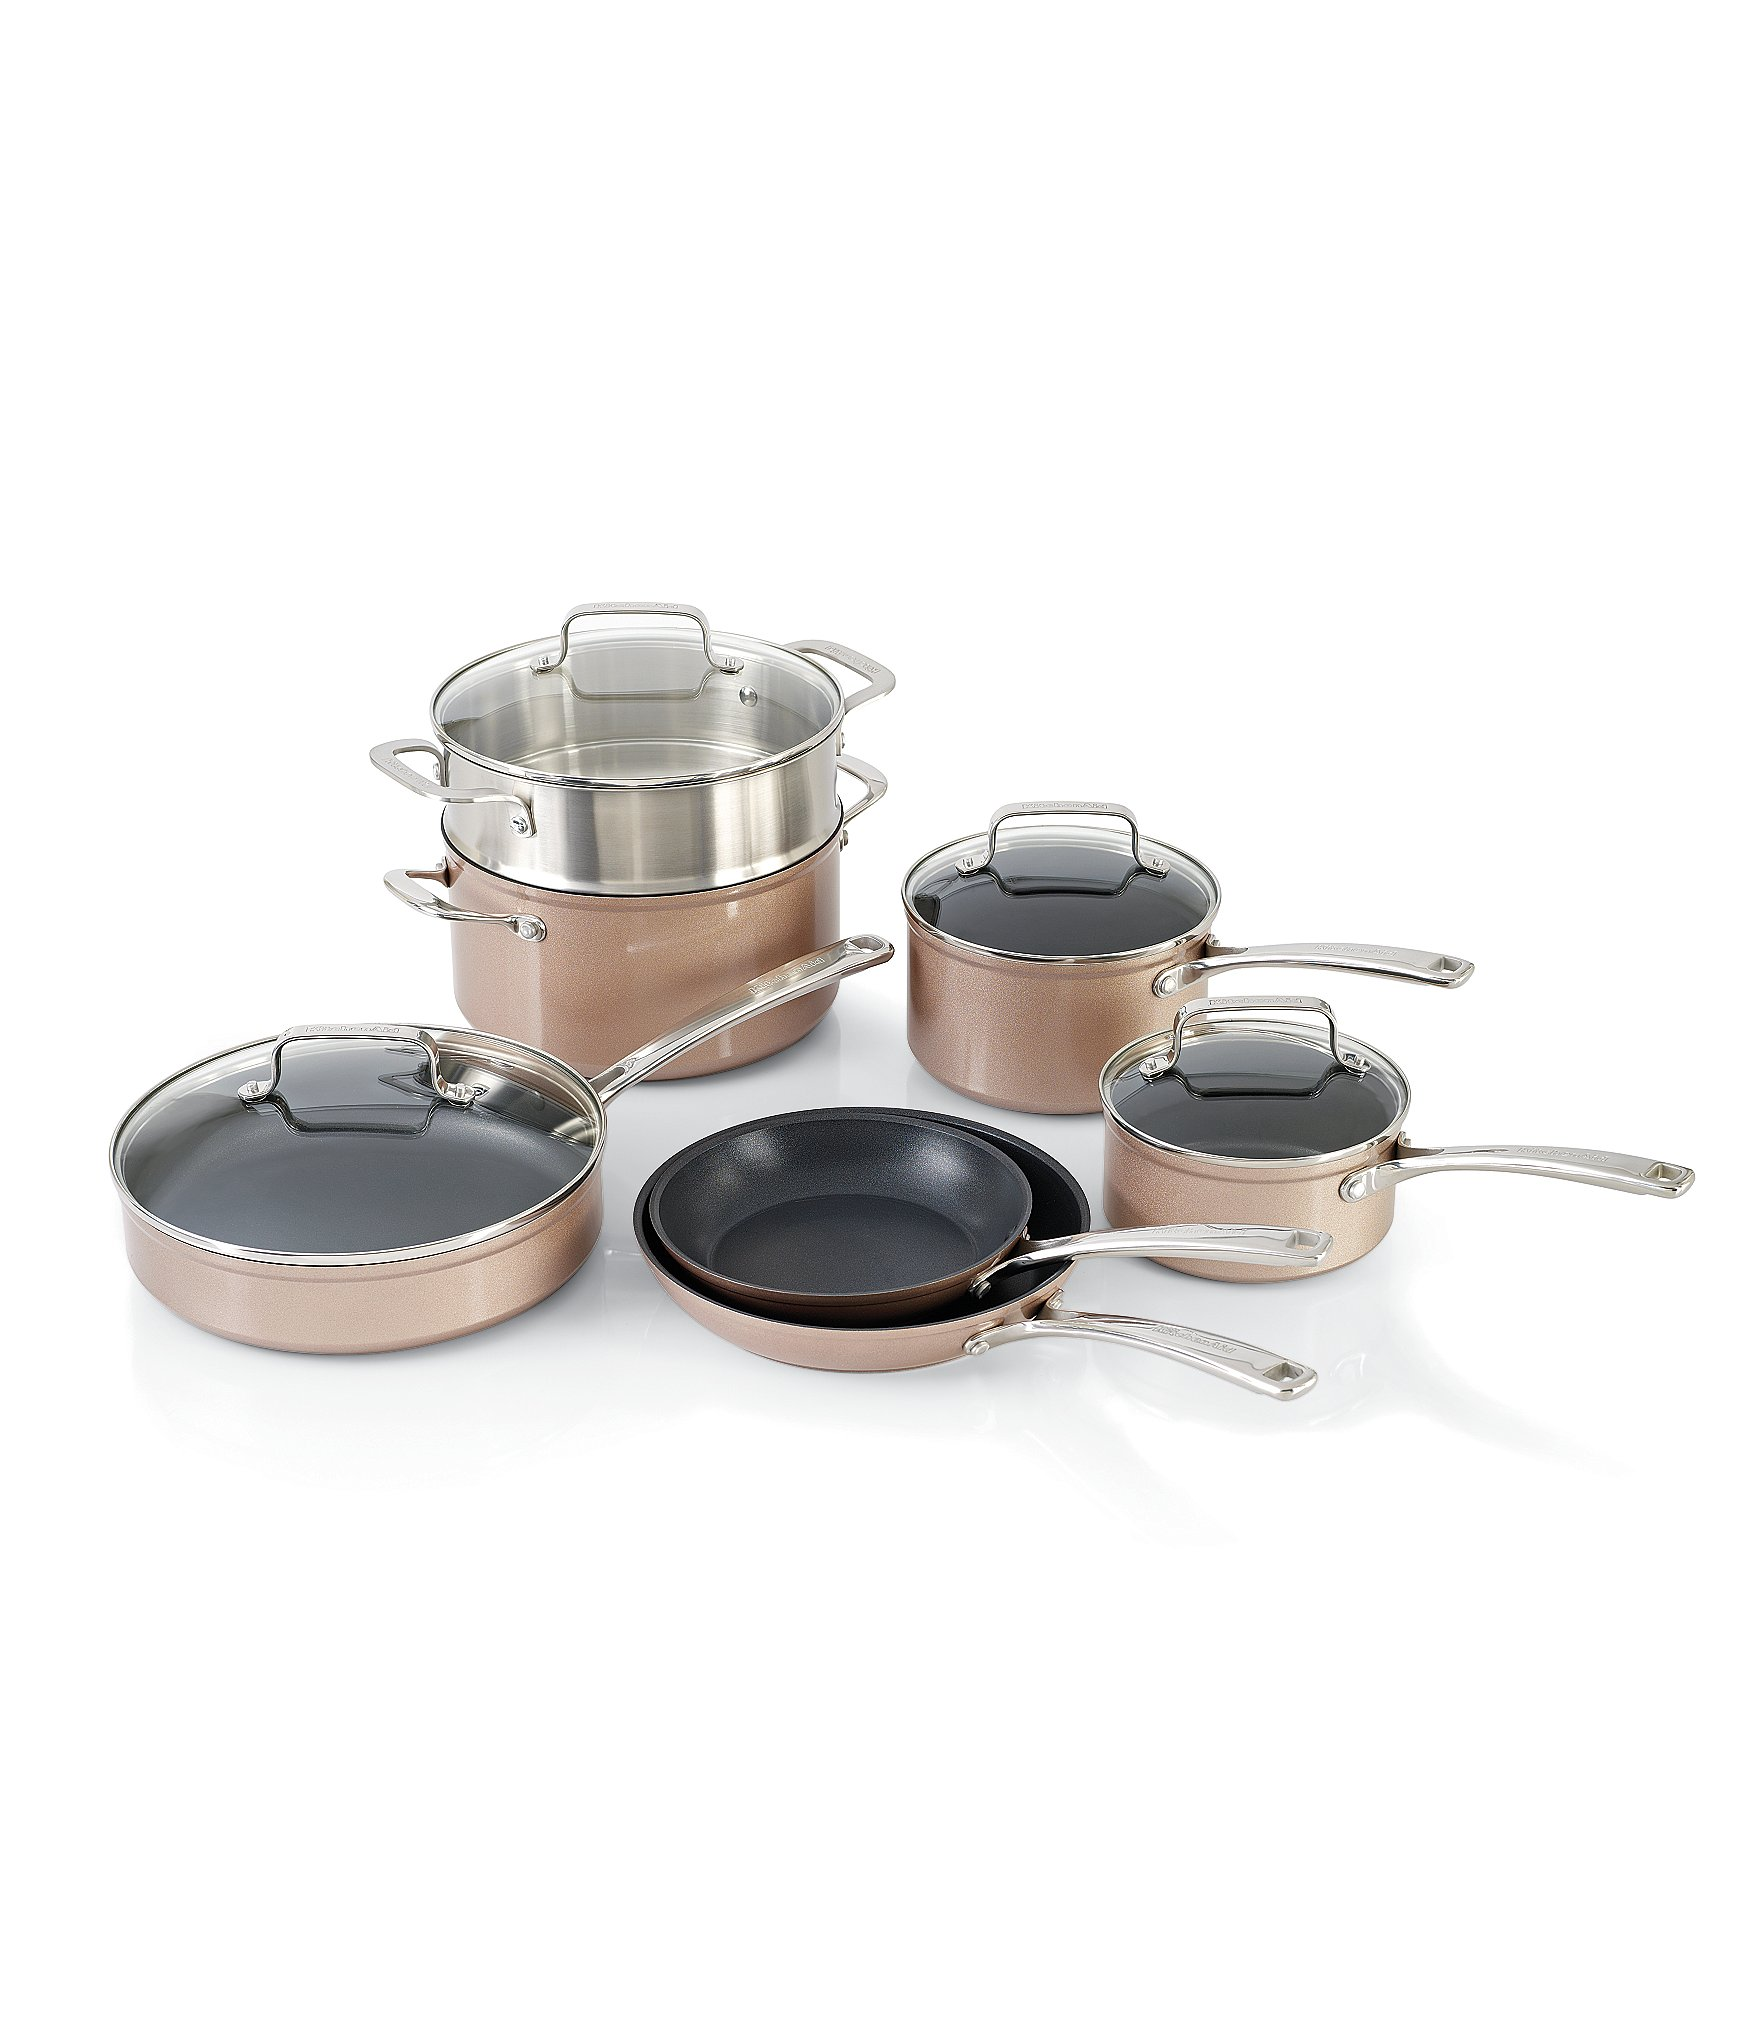 Kitchenaid toffee delight hard anodized nonstick 11 piece cookware set dillards - Kitchenaid aluminum nonstick piece cookware set ...